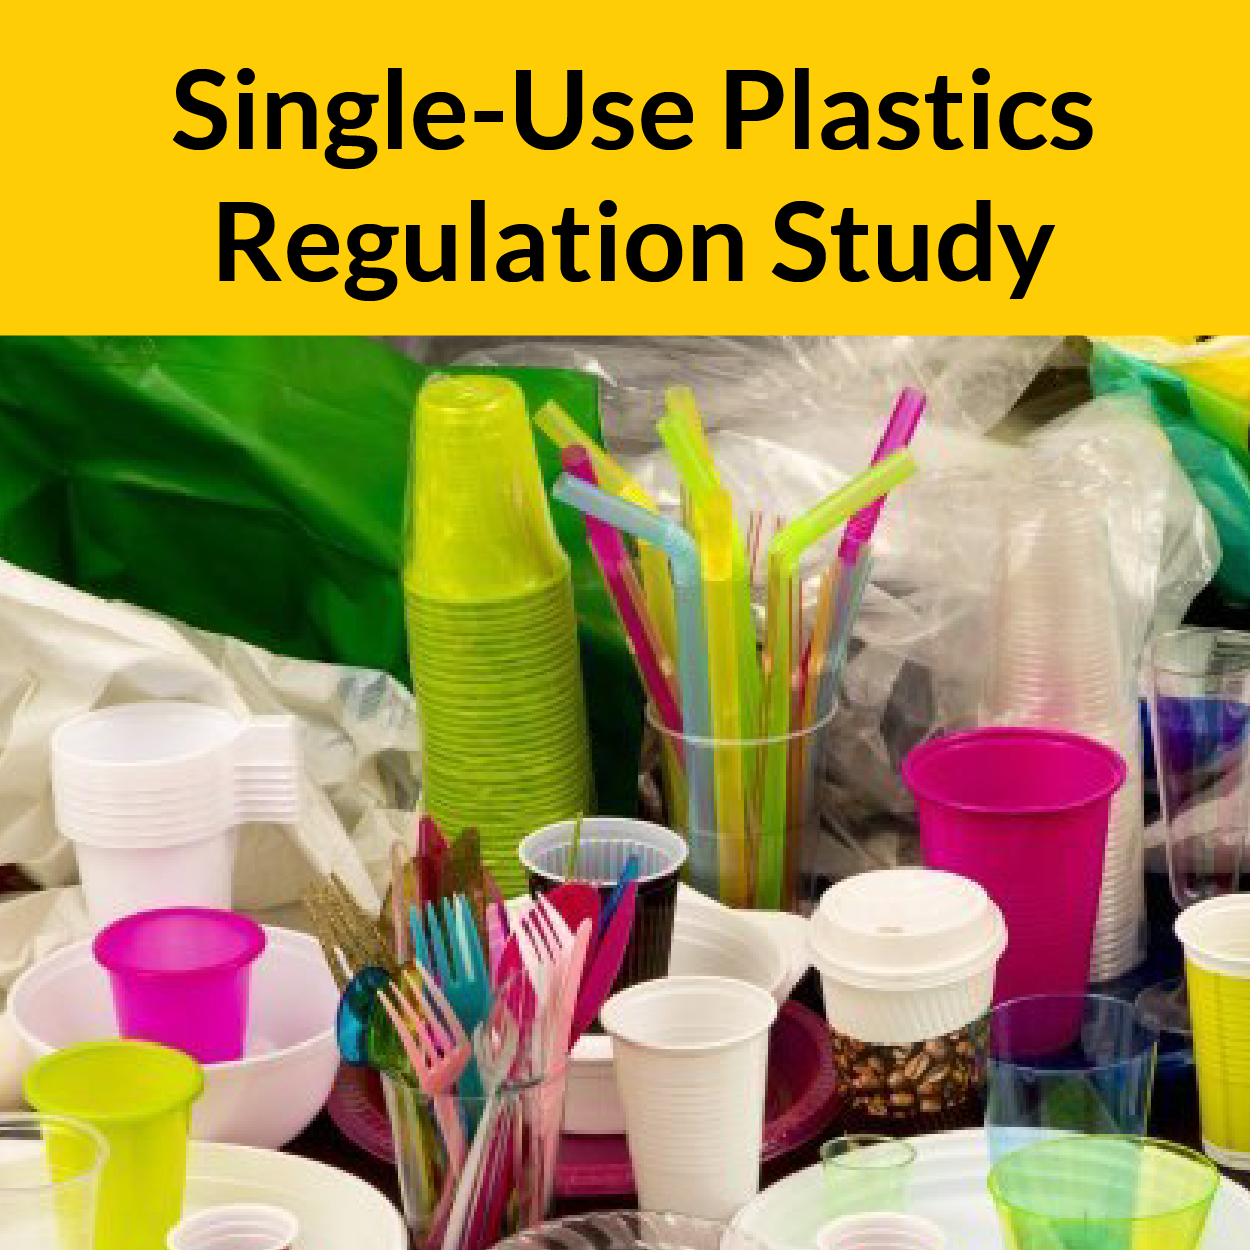 Single-Use Plastic Regulation Study